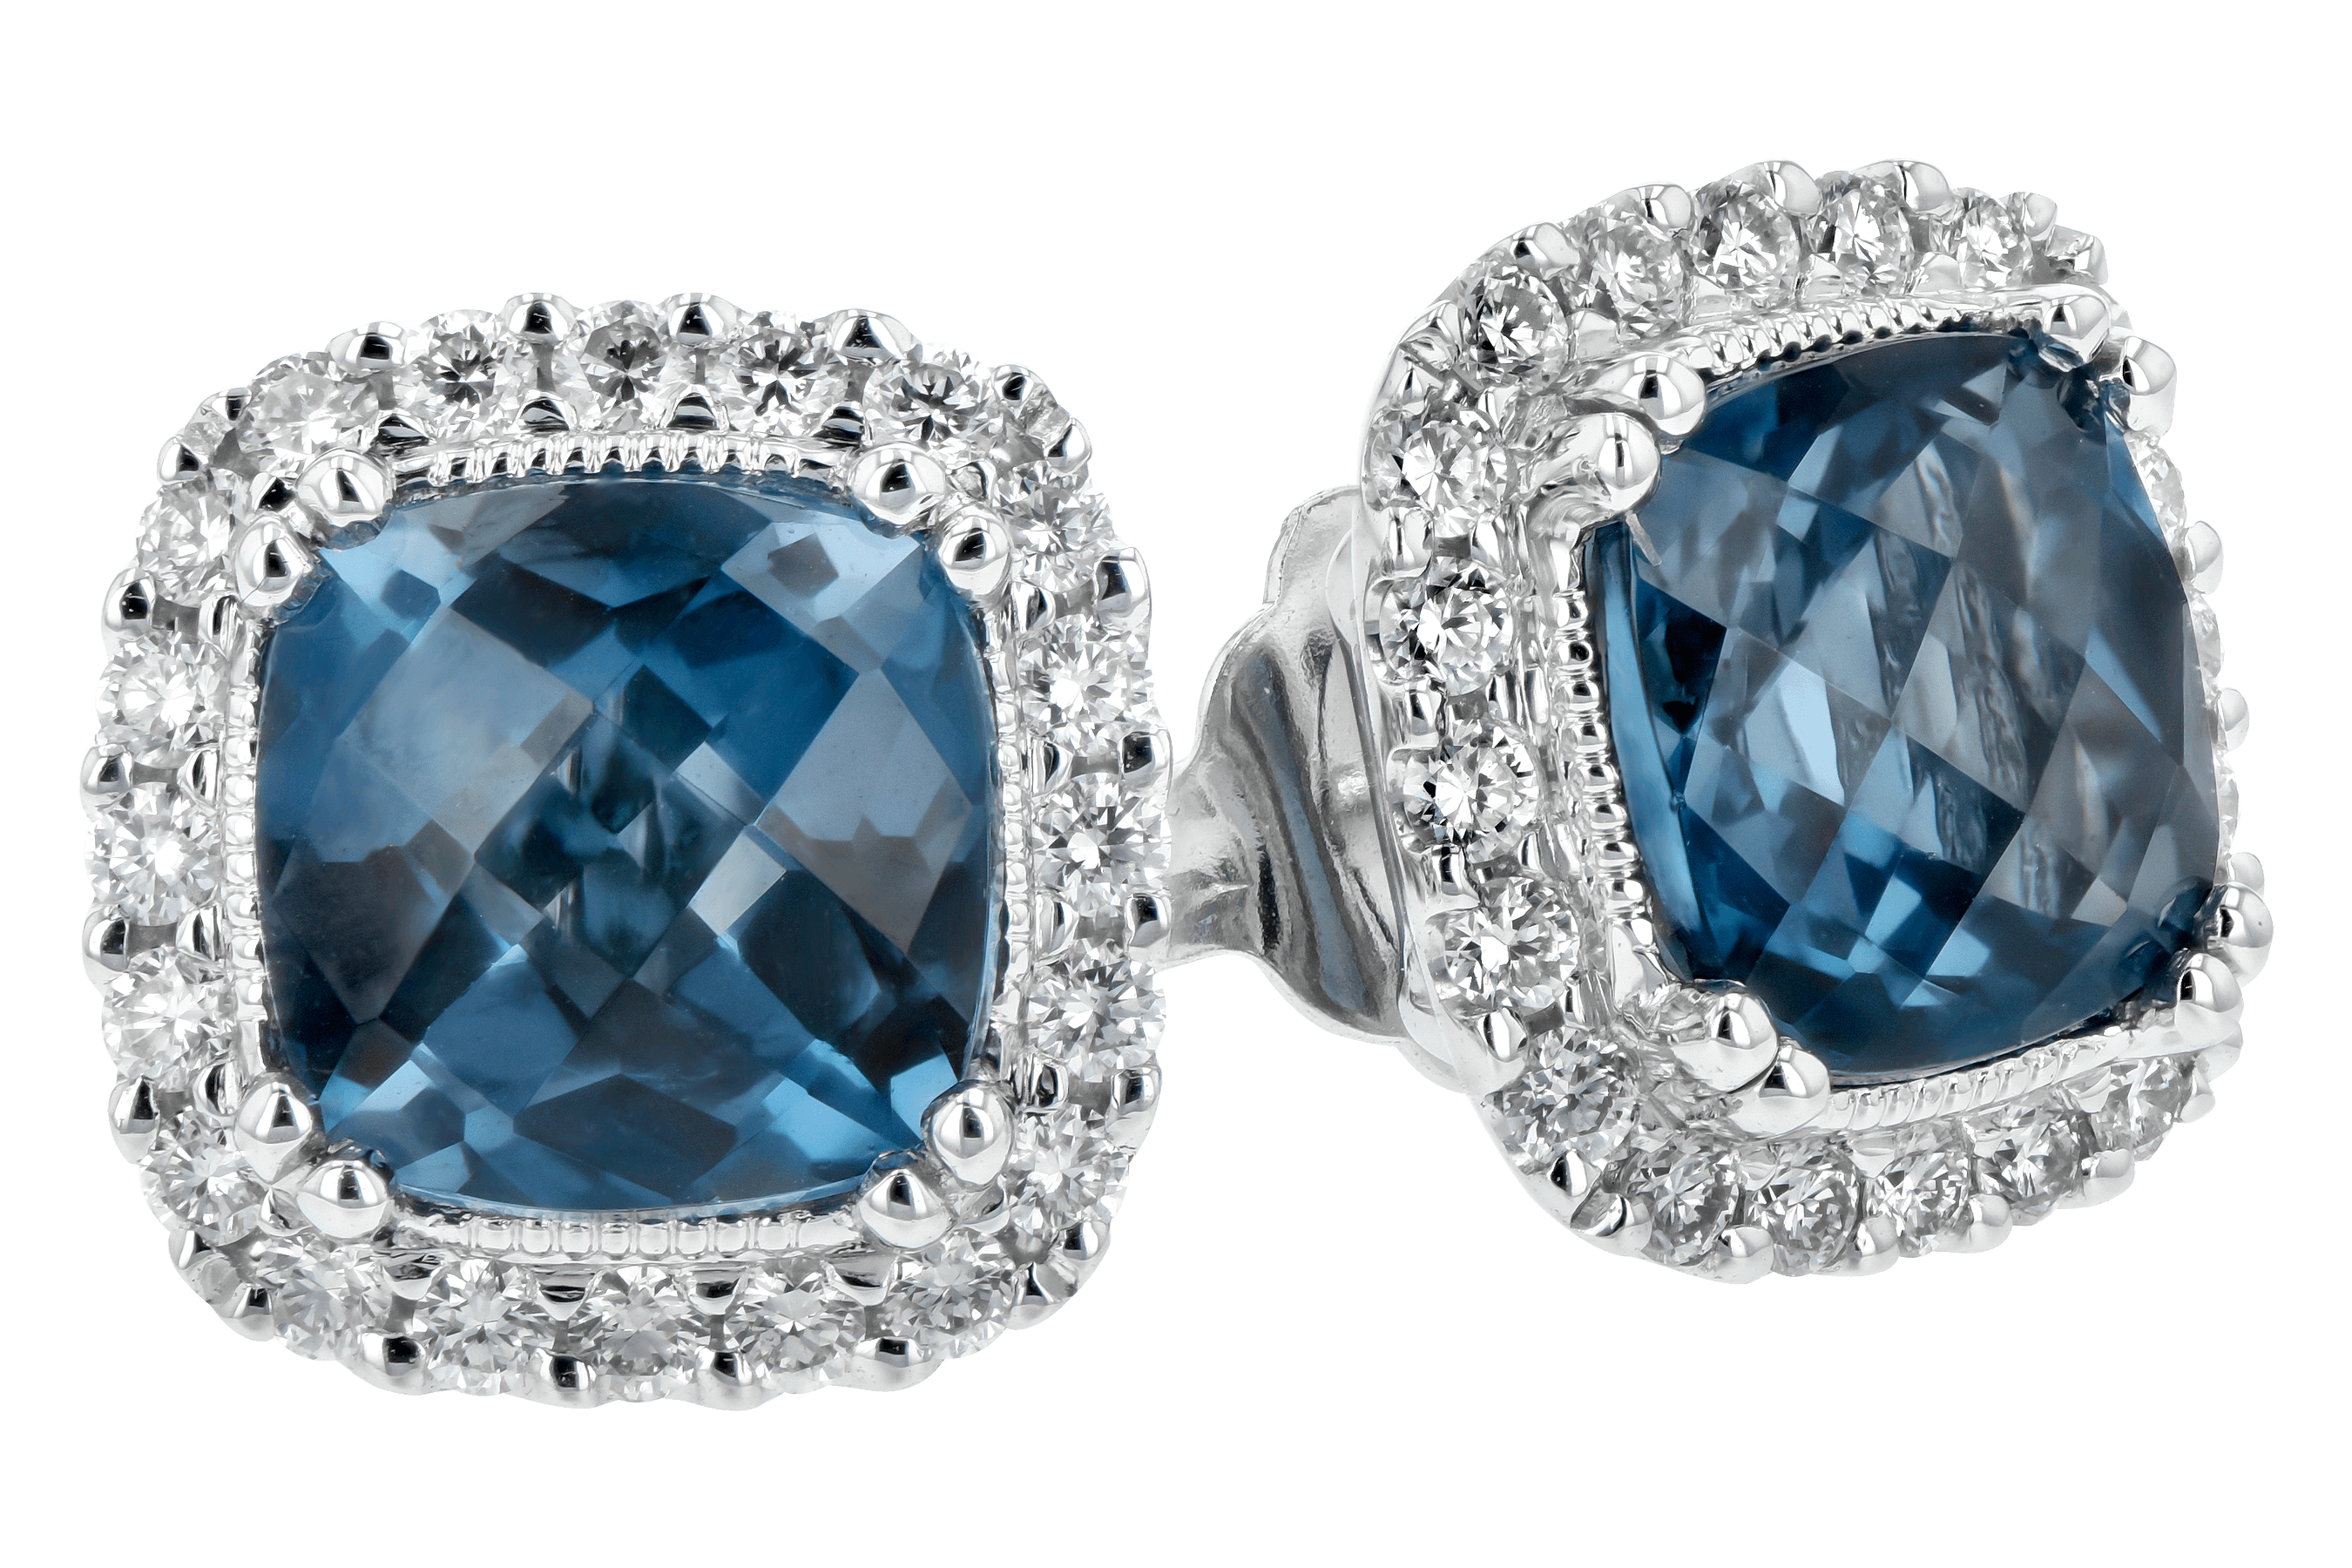 F189-19749: EARR 2.14 LONDON BLUE TOPAZ 2.40 TGW